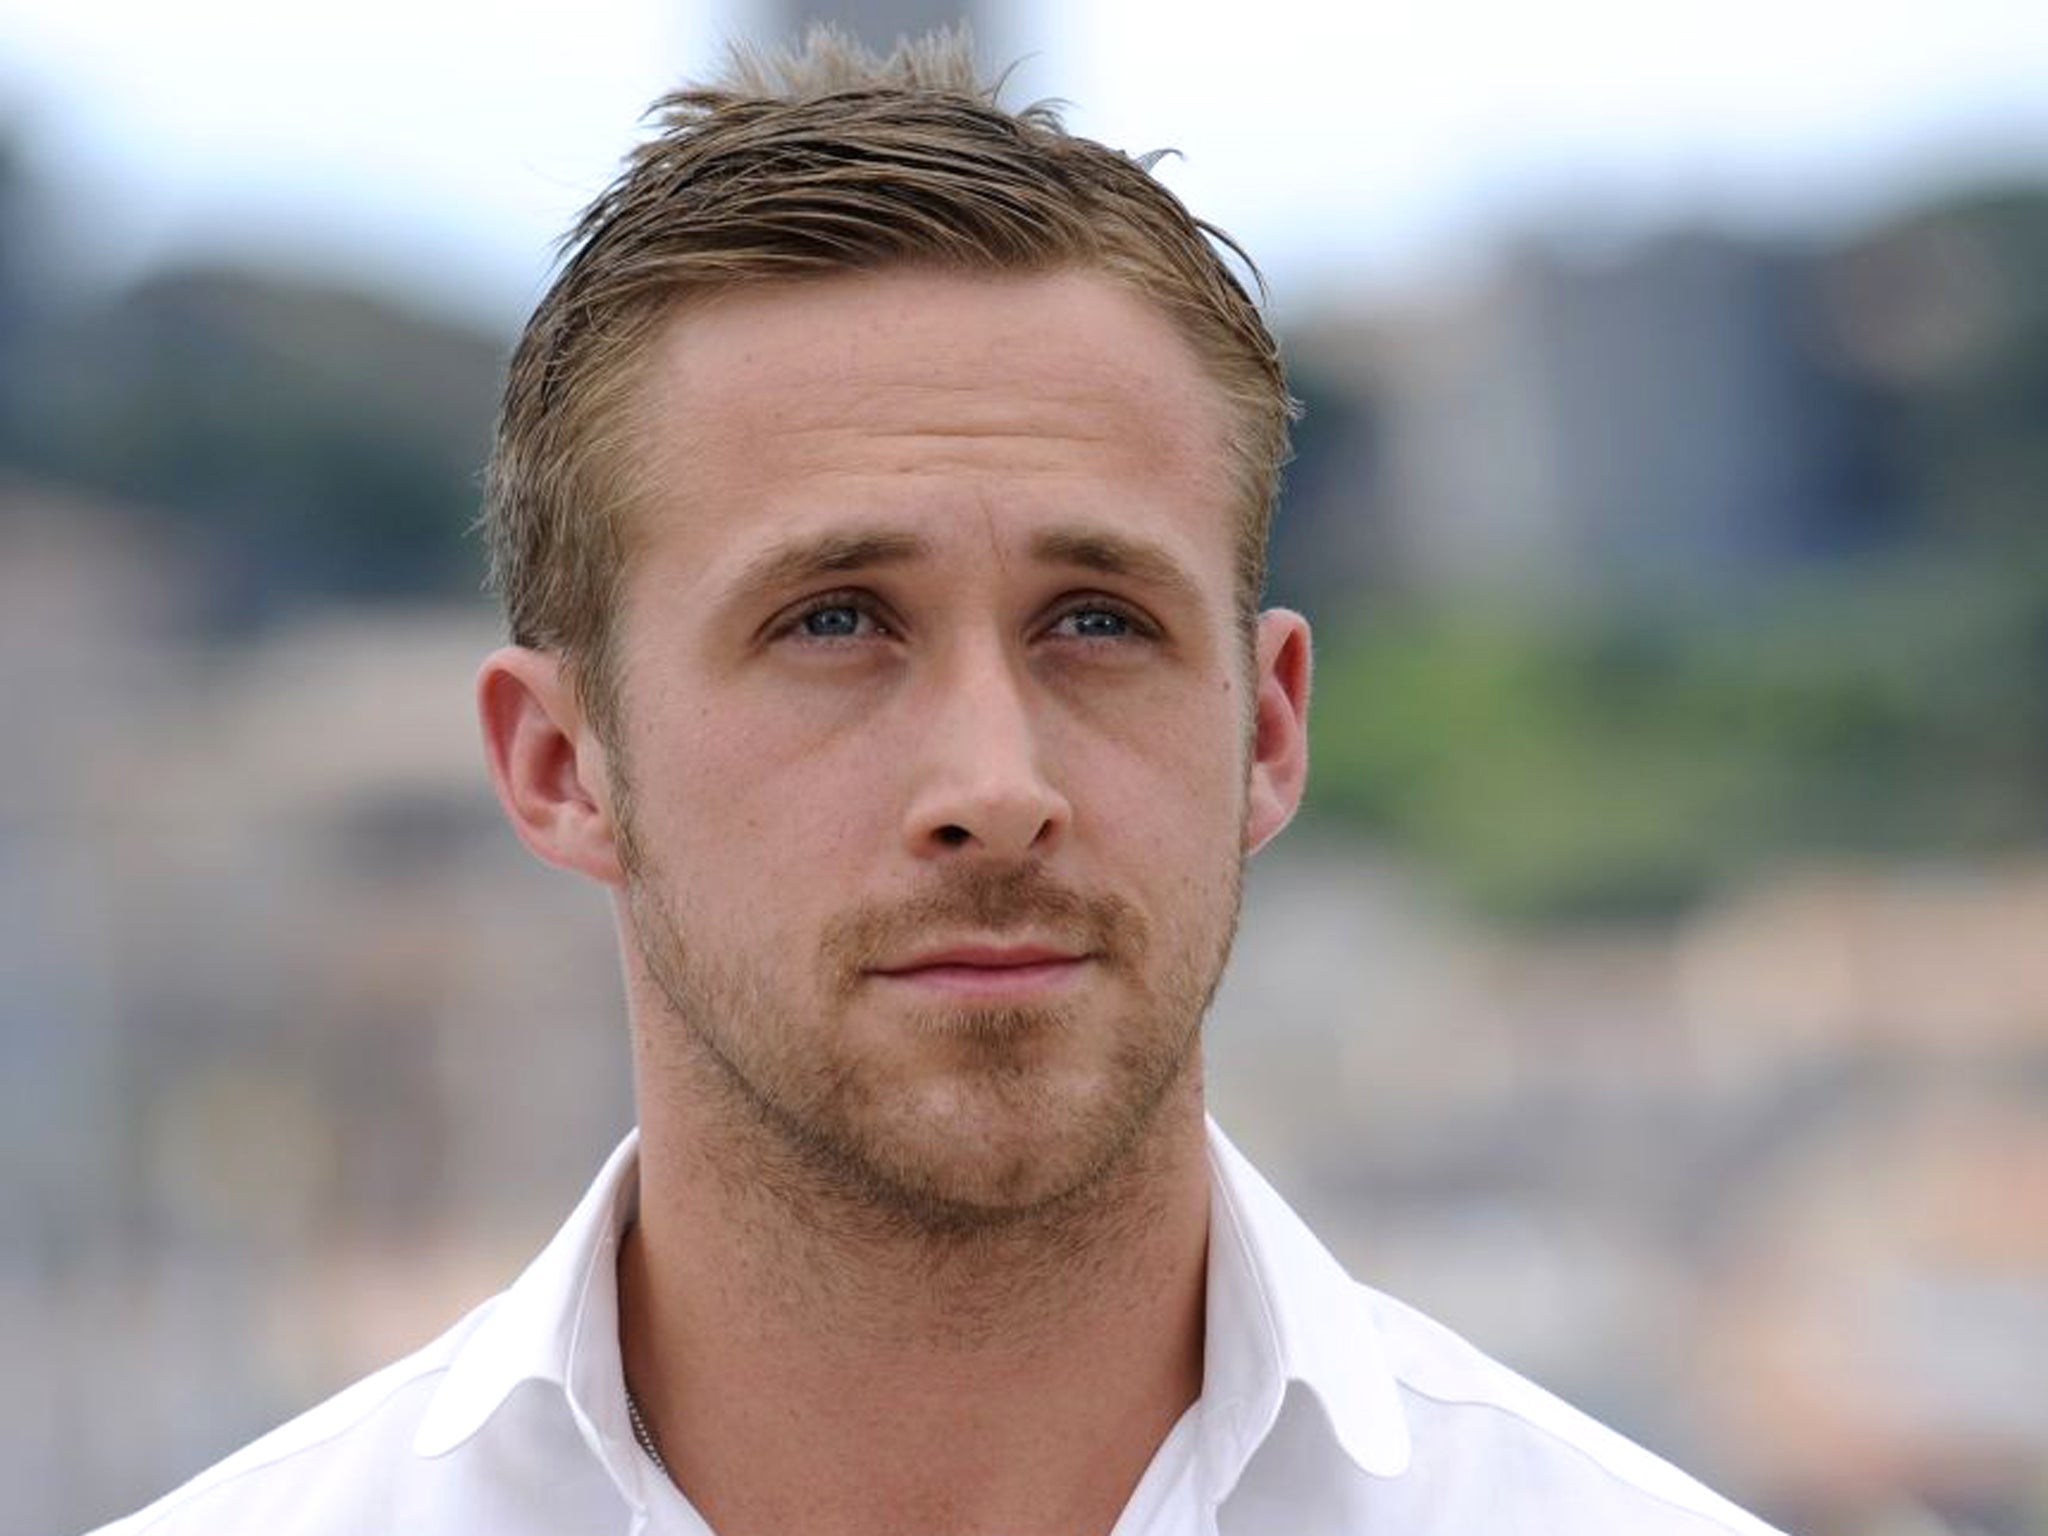 Ryan Gosling tells all about the love of his life (his dog ... Ryan Gosling